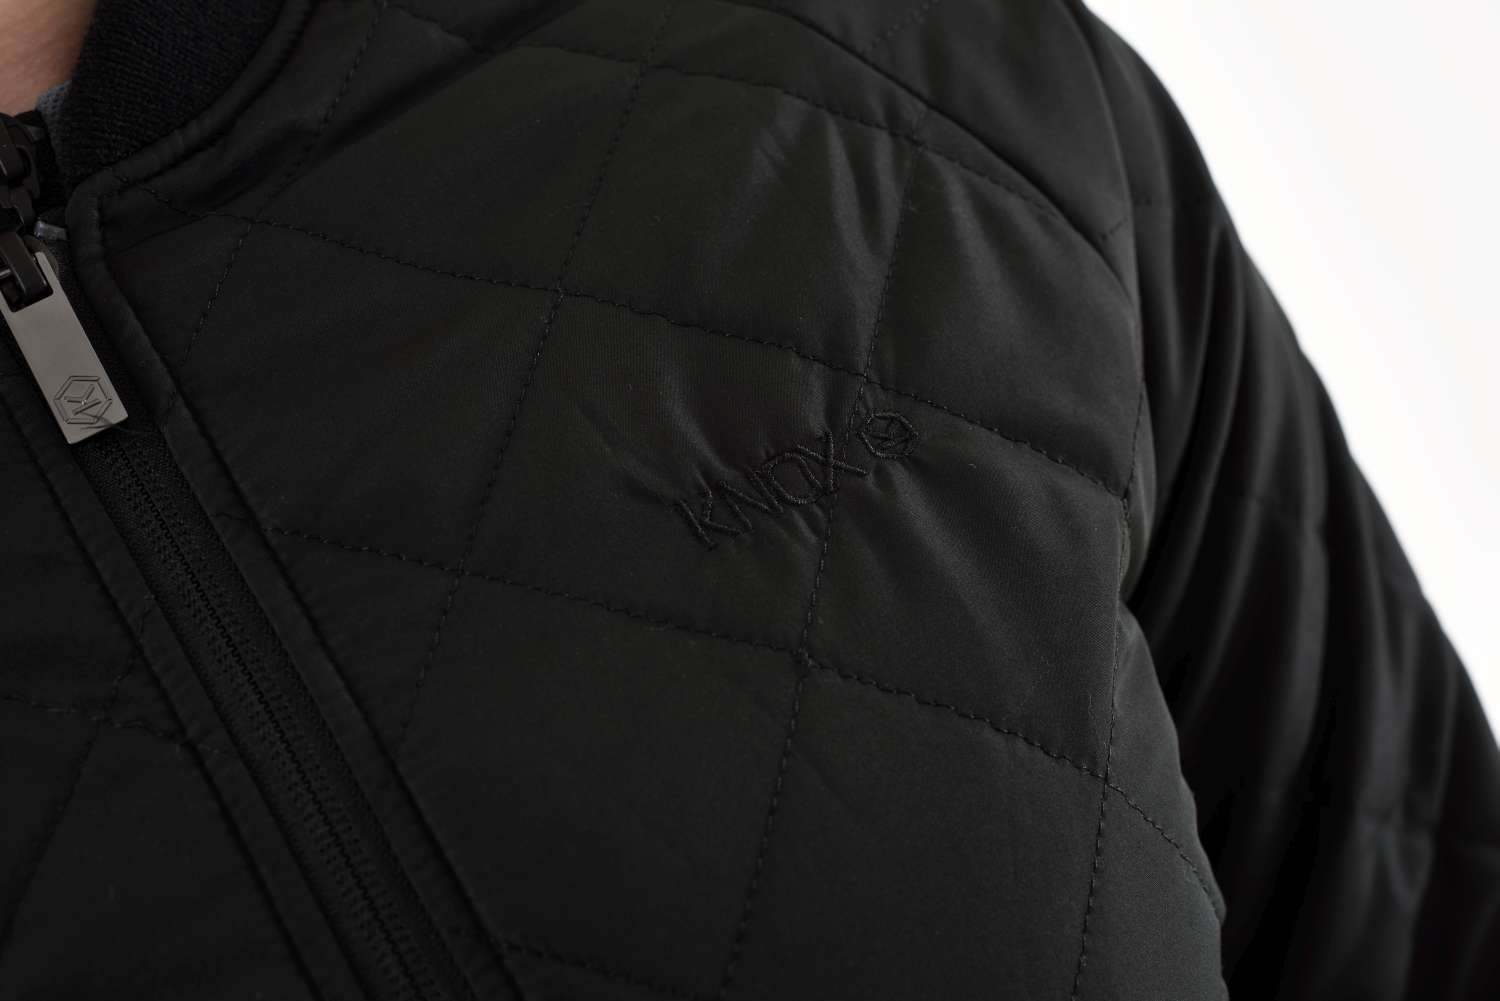 knox-quilted-jacket-detail3